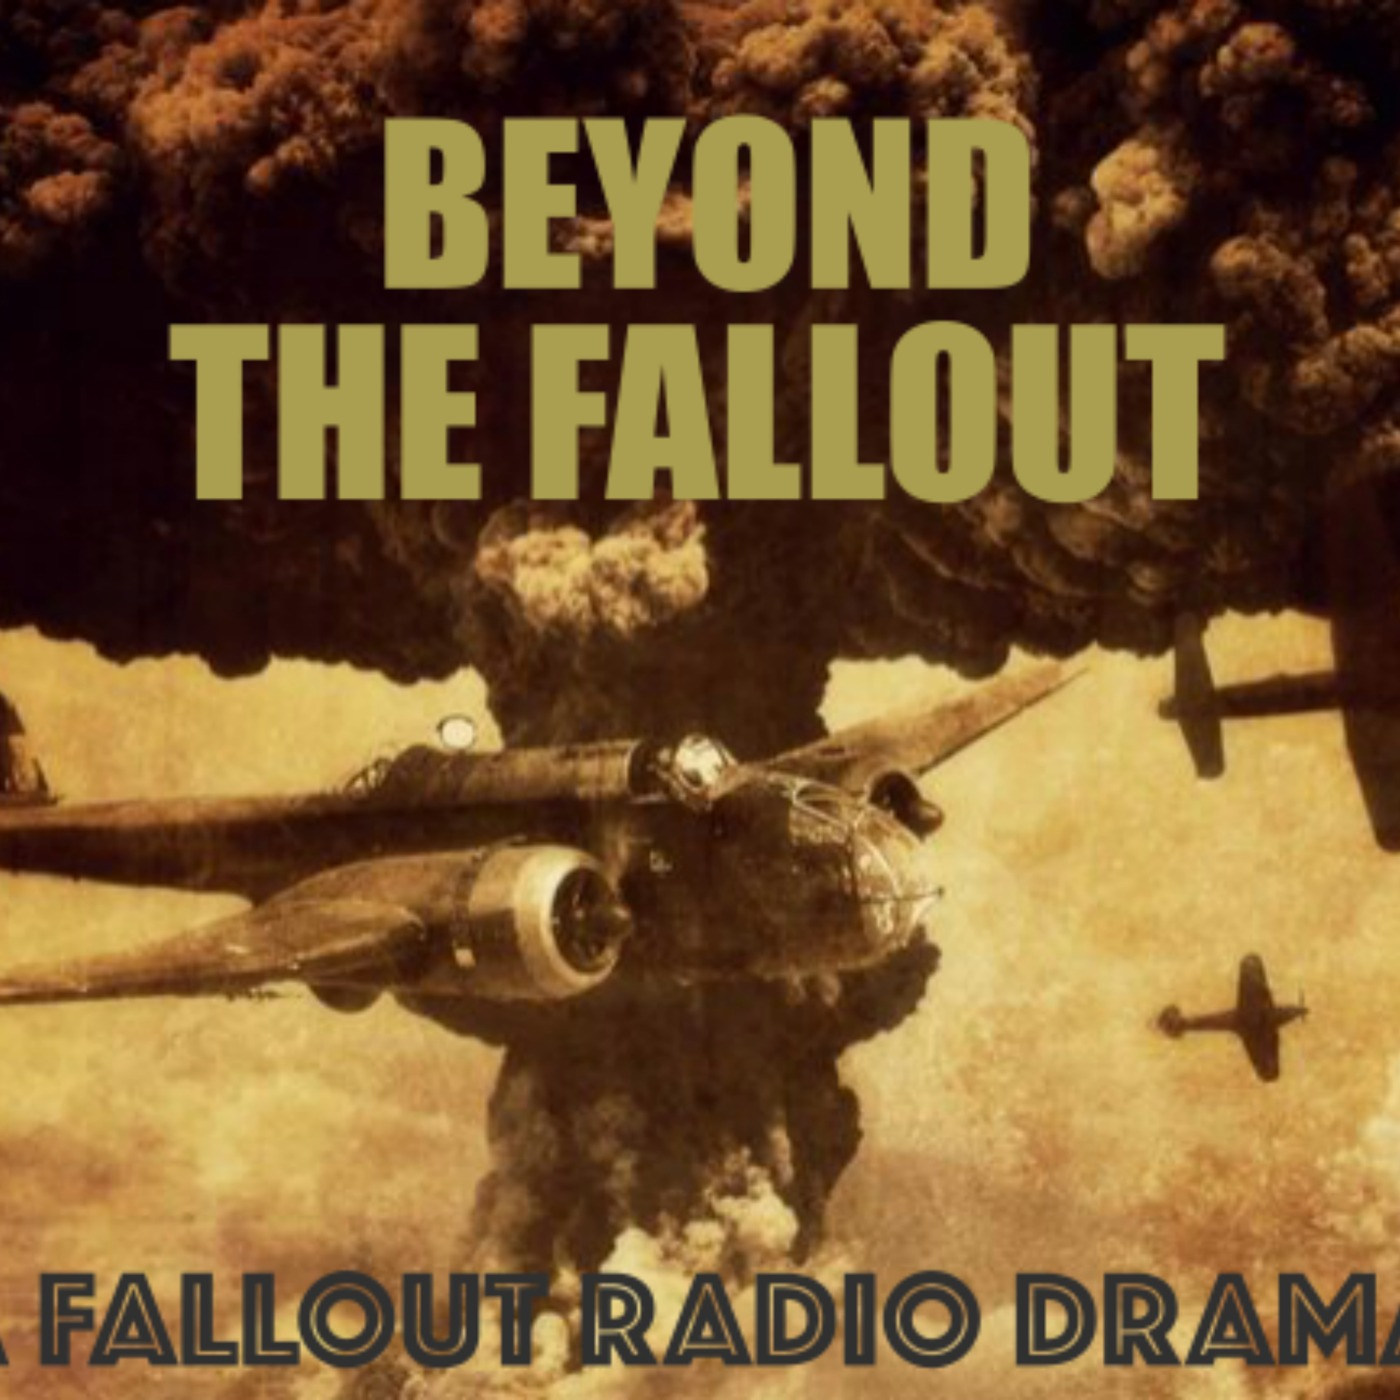 Beyond The Fallout